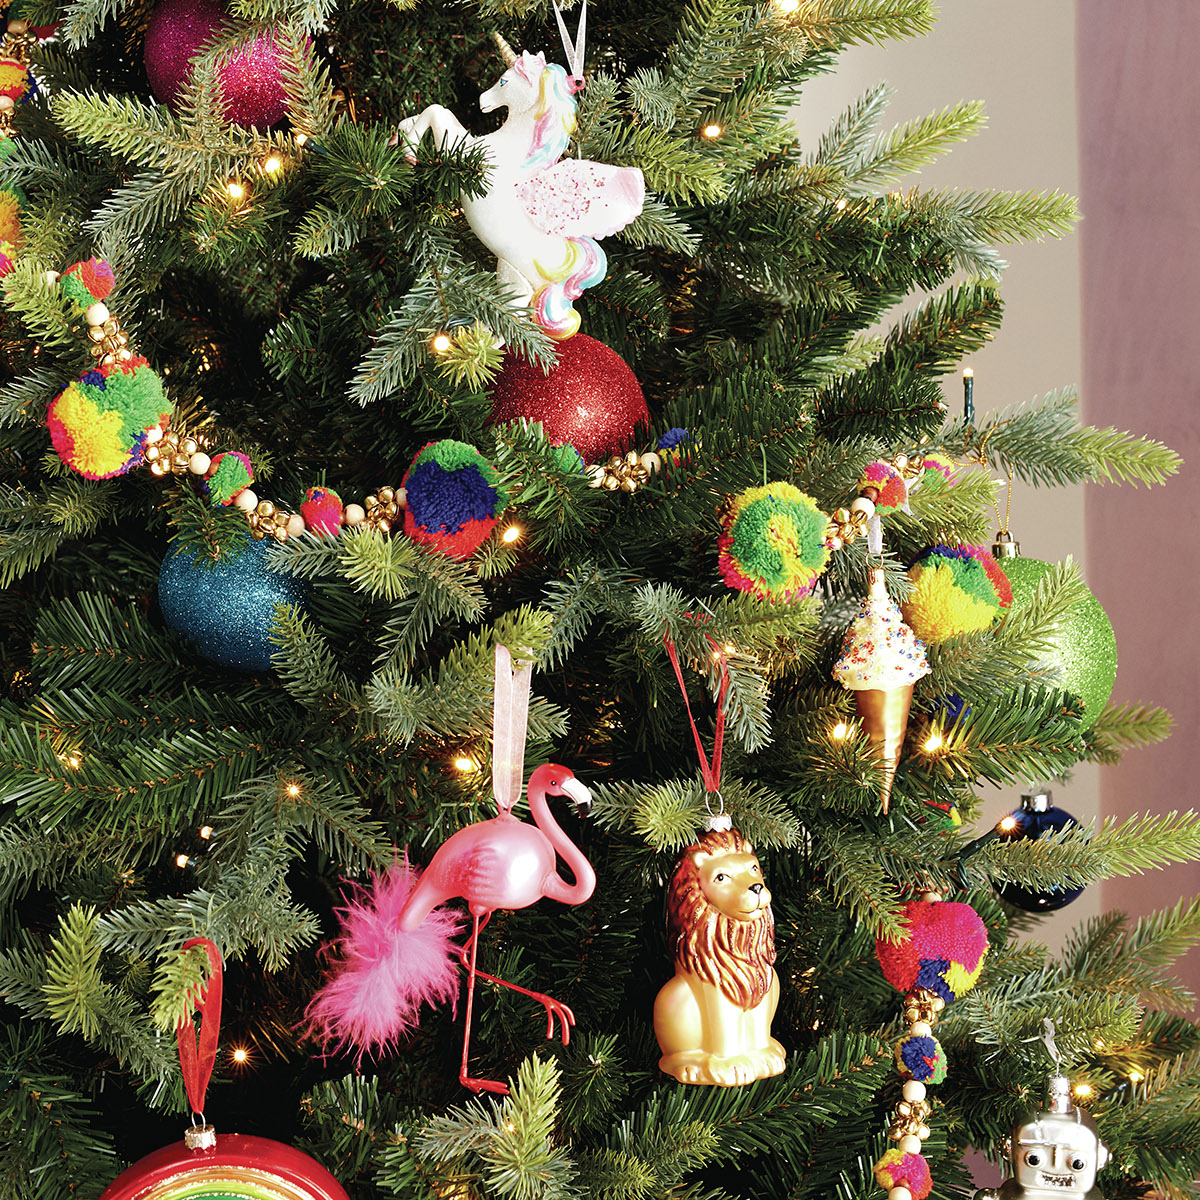 Sophie Robinson tells us why she favours real over faux. Brightly coloured tree decorations really pop out of the natural green pine. #Christmastrees #sophierobinson